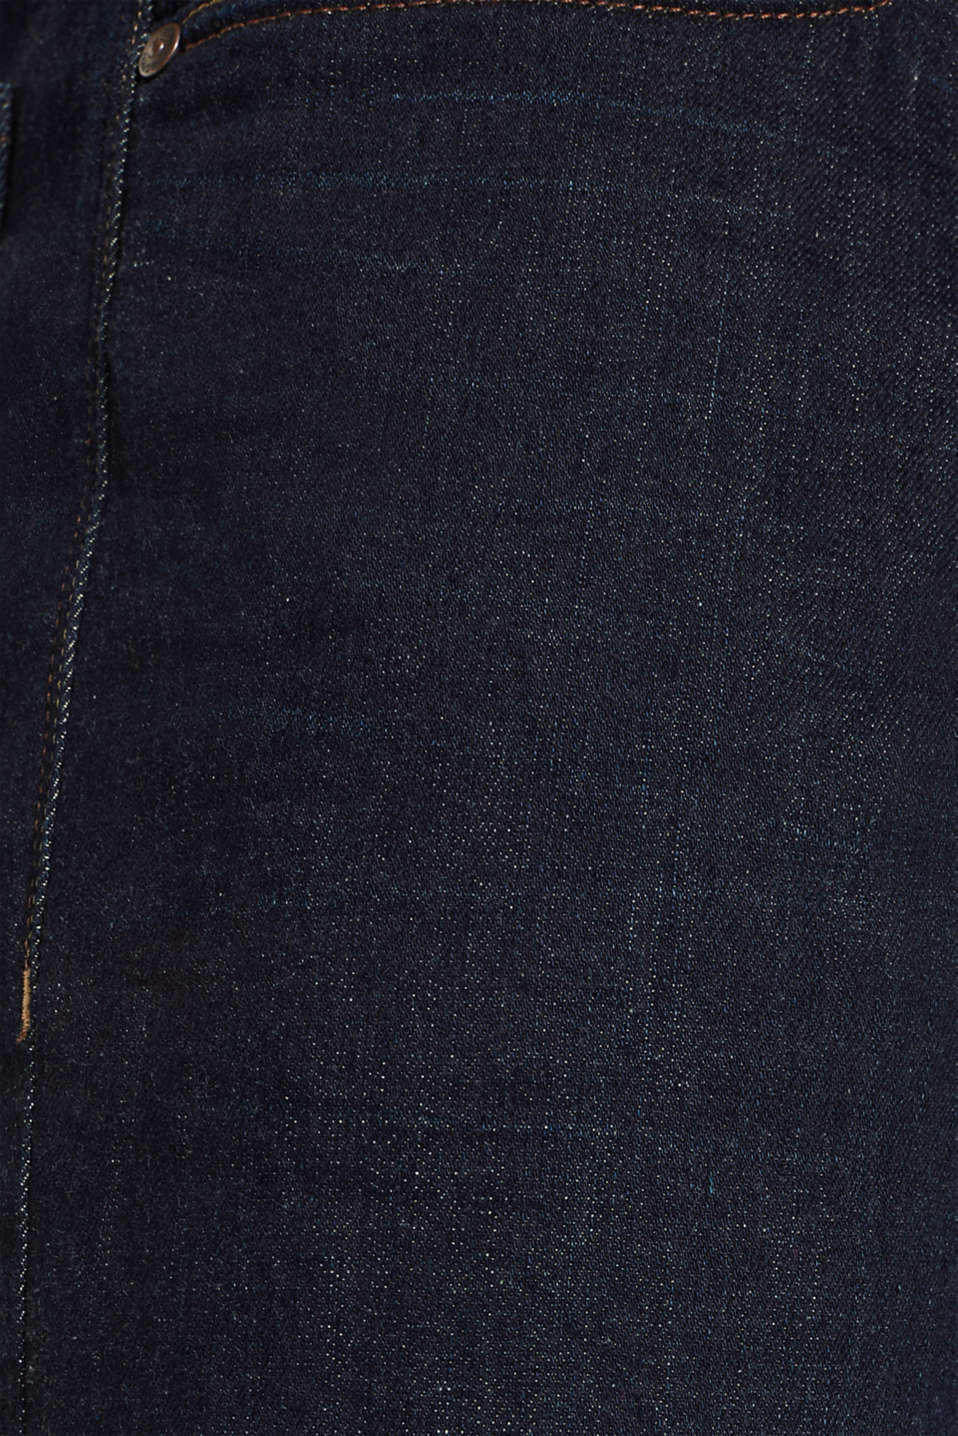 Pants denim Straight fit, BLUE RINSE, detail image number 5